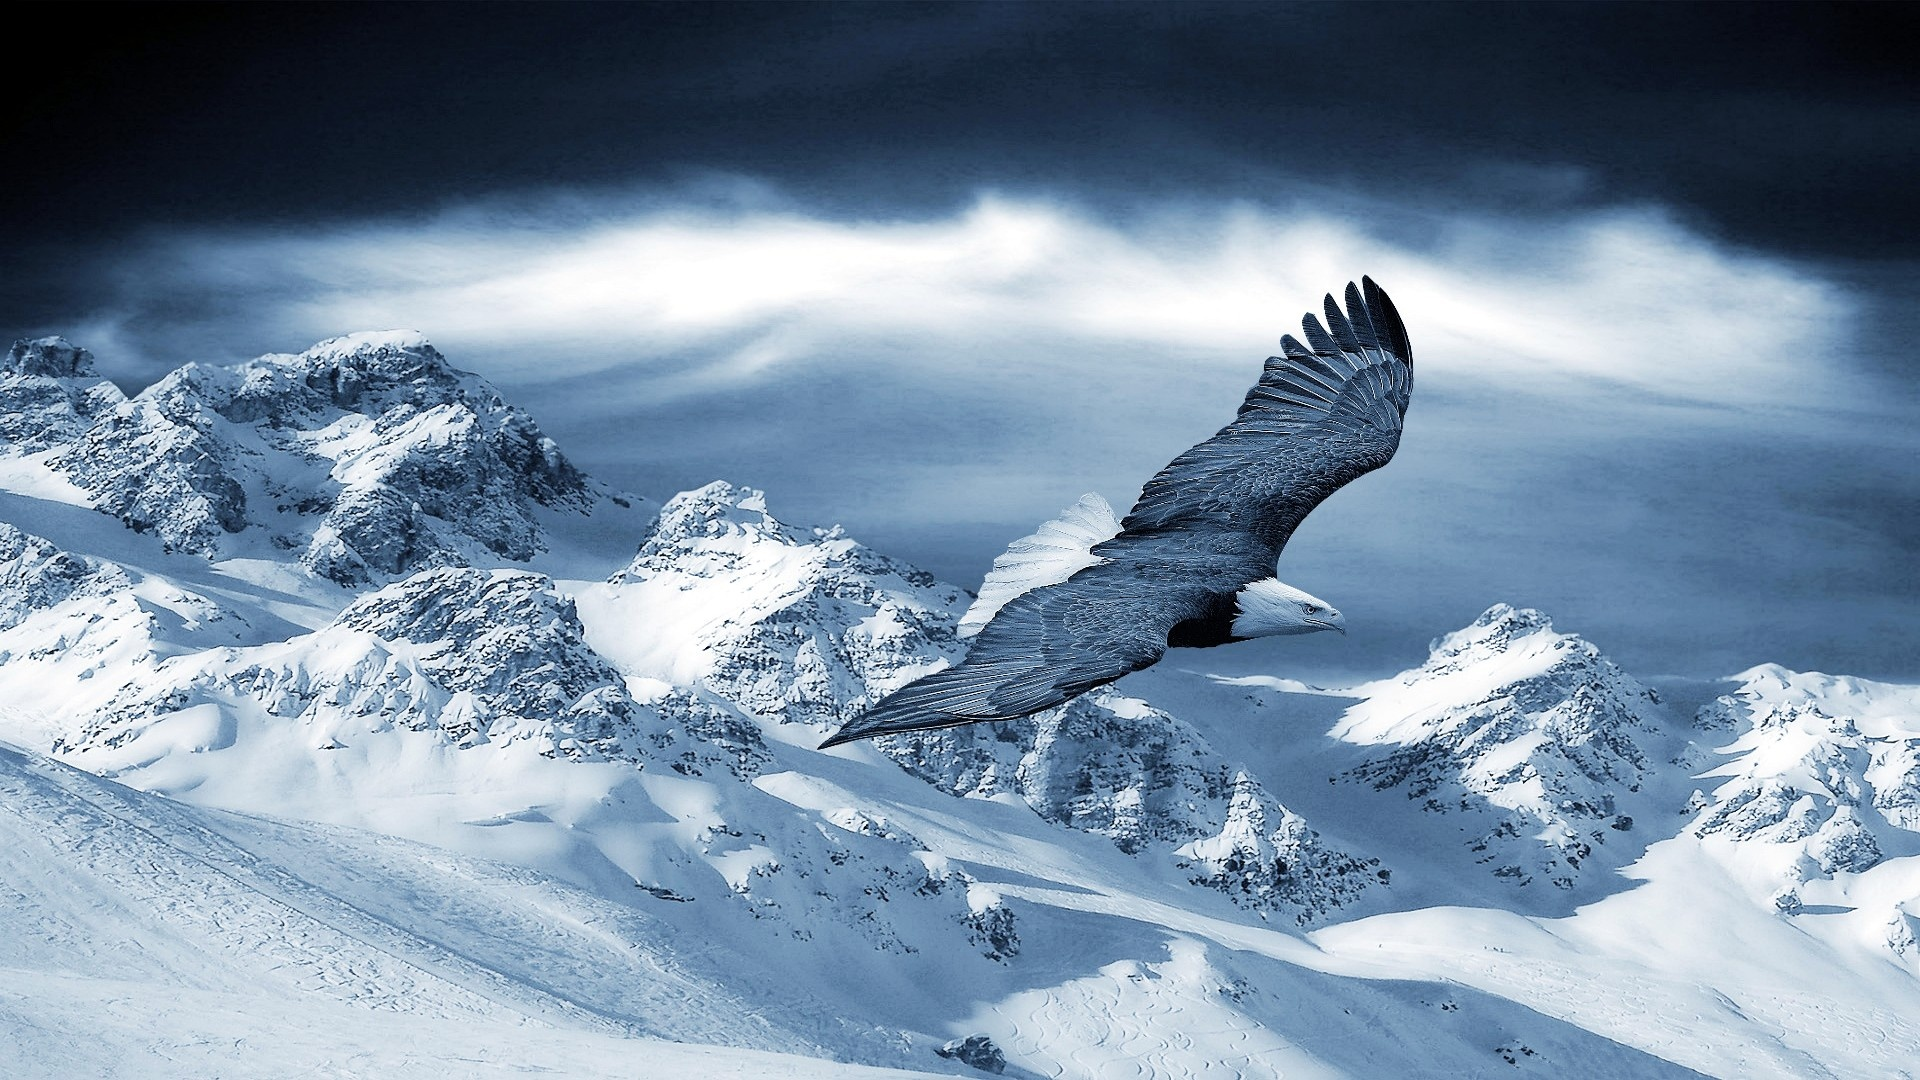 winter wallpapers wallpaper pictures - photo #25